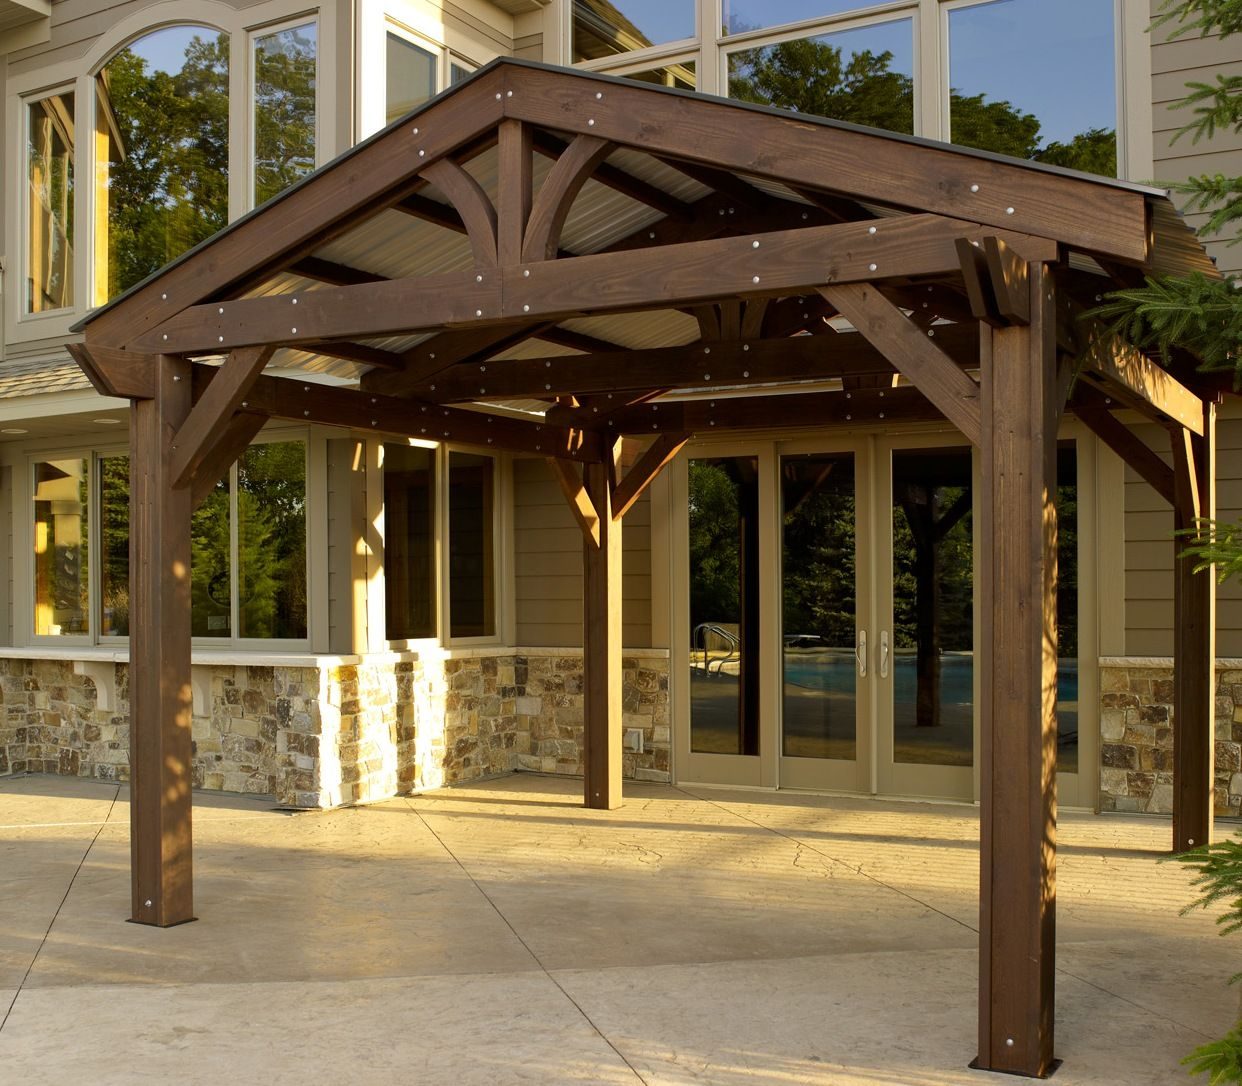 Excellent With Oklahoma Hail We Need To Add A Carport This Would Be A Great Largest Home Design Picture Inspirations Pitcheantrous